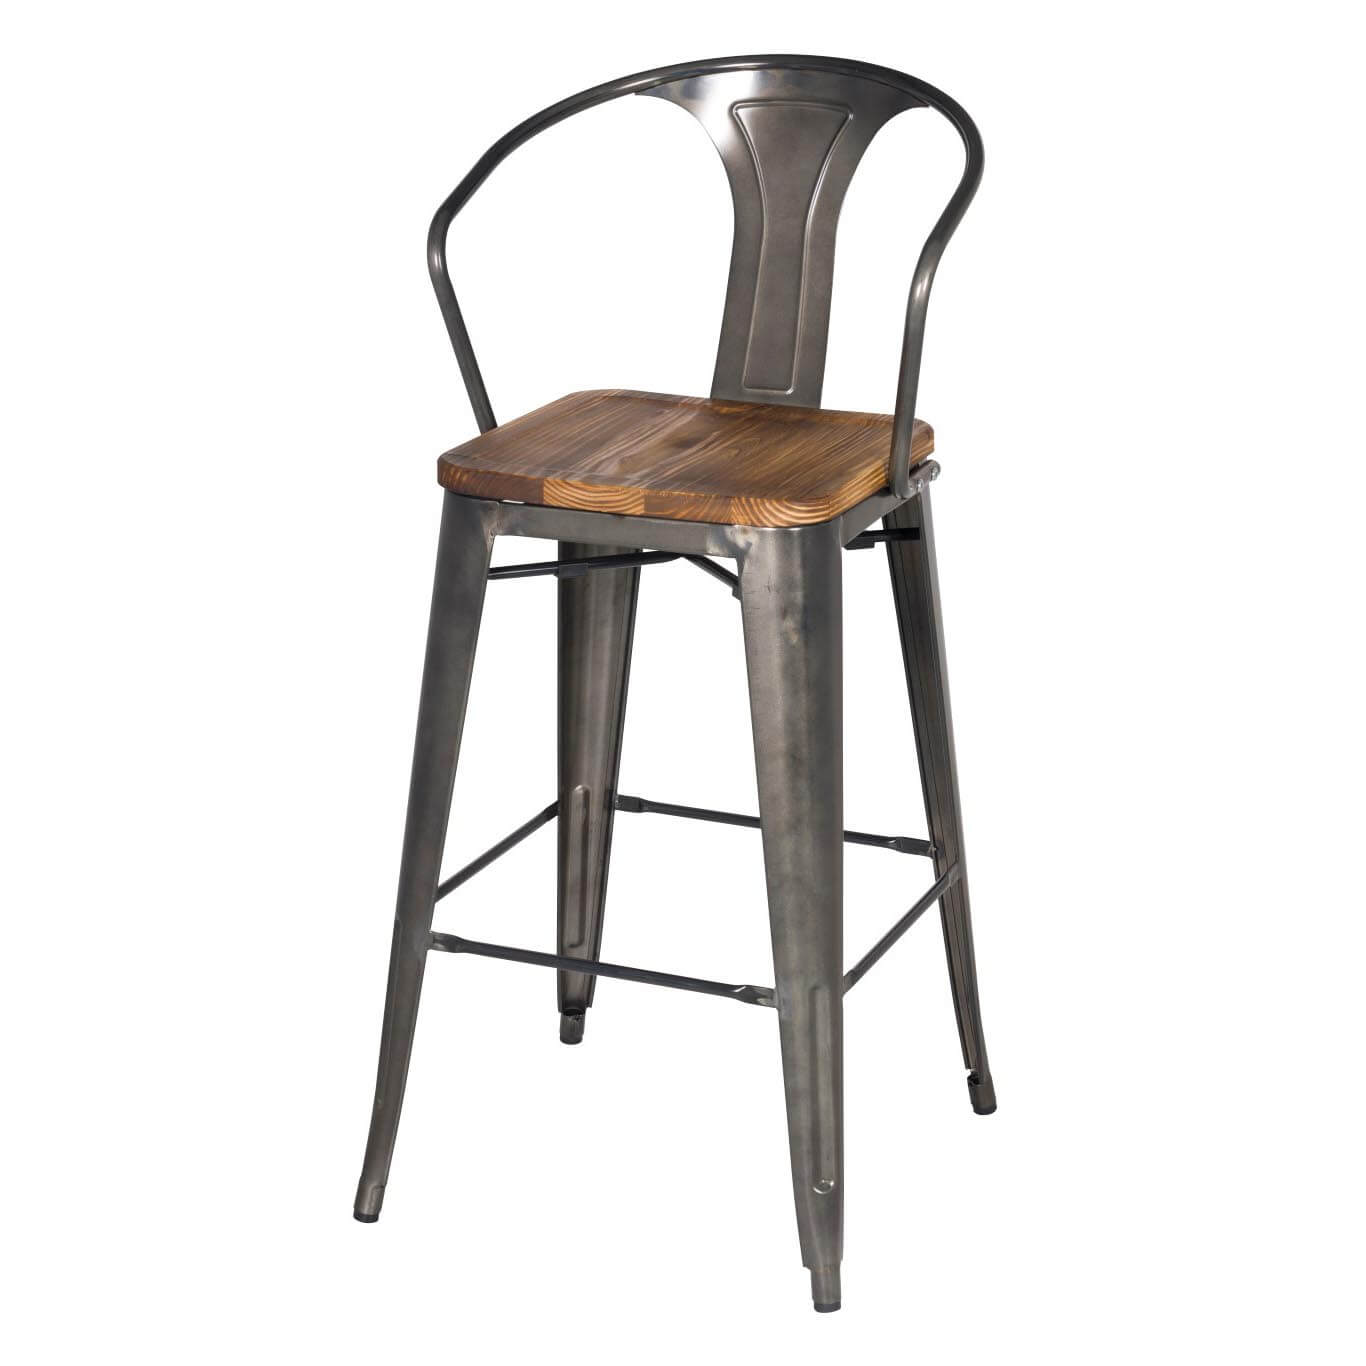 gunmetal - Metal Bar Stools With Backs